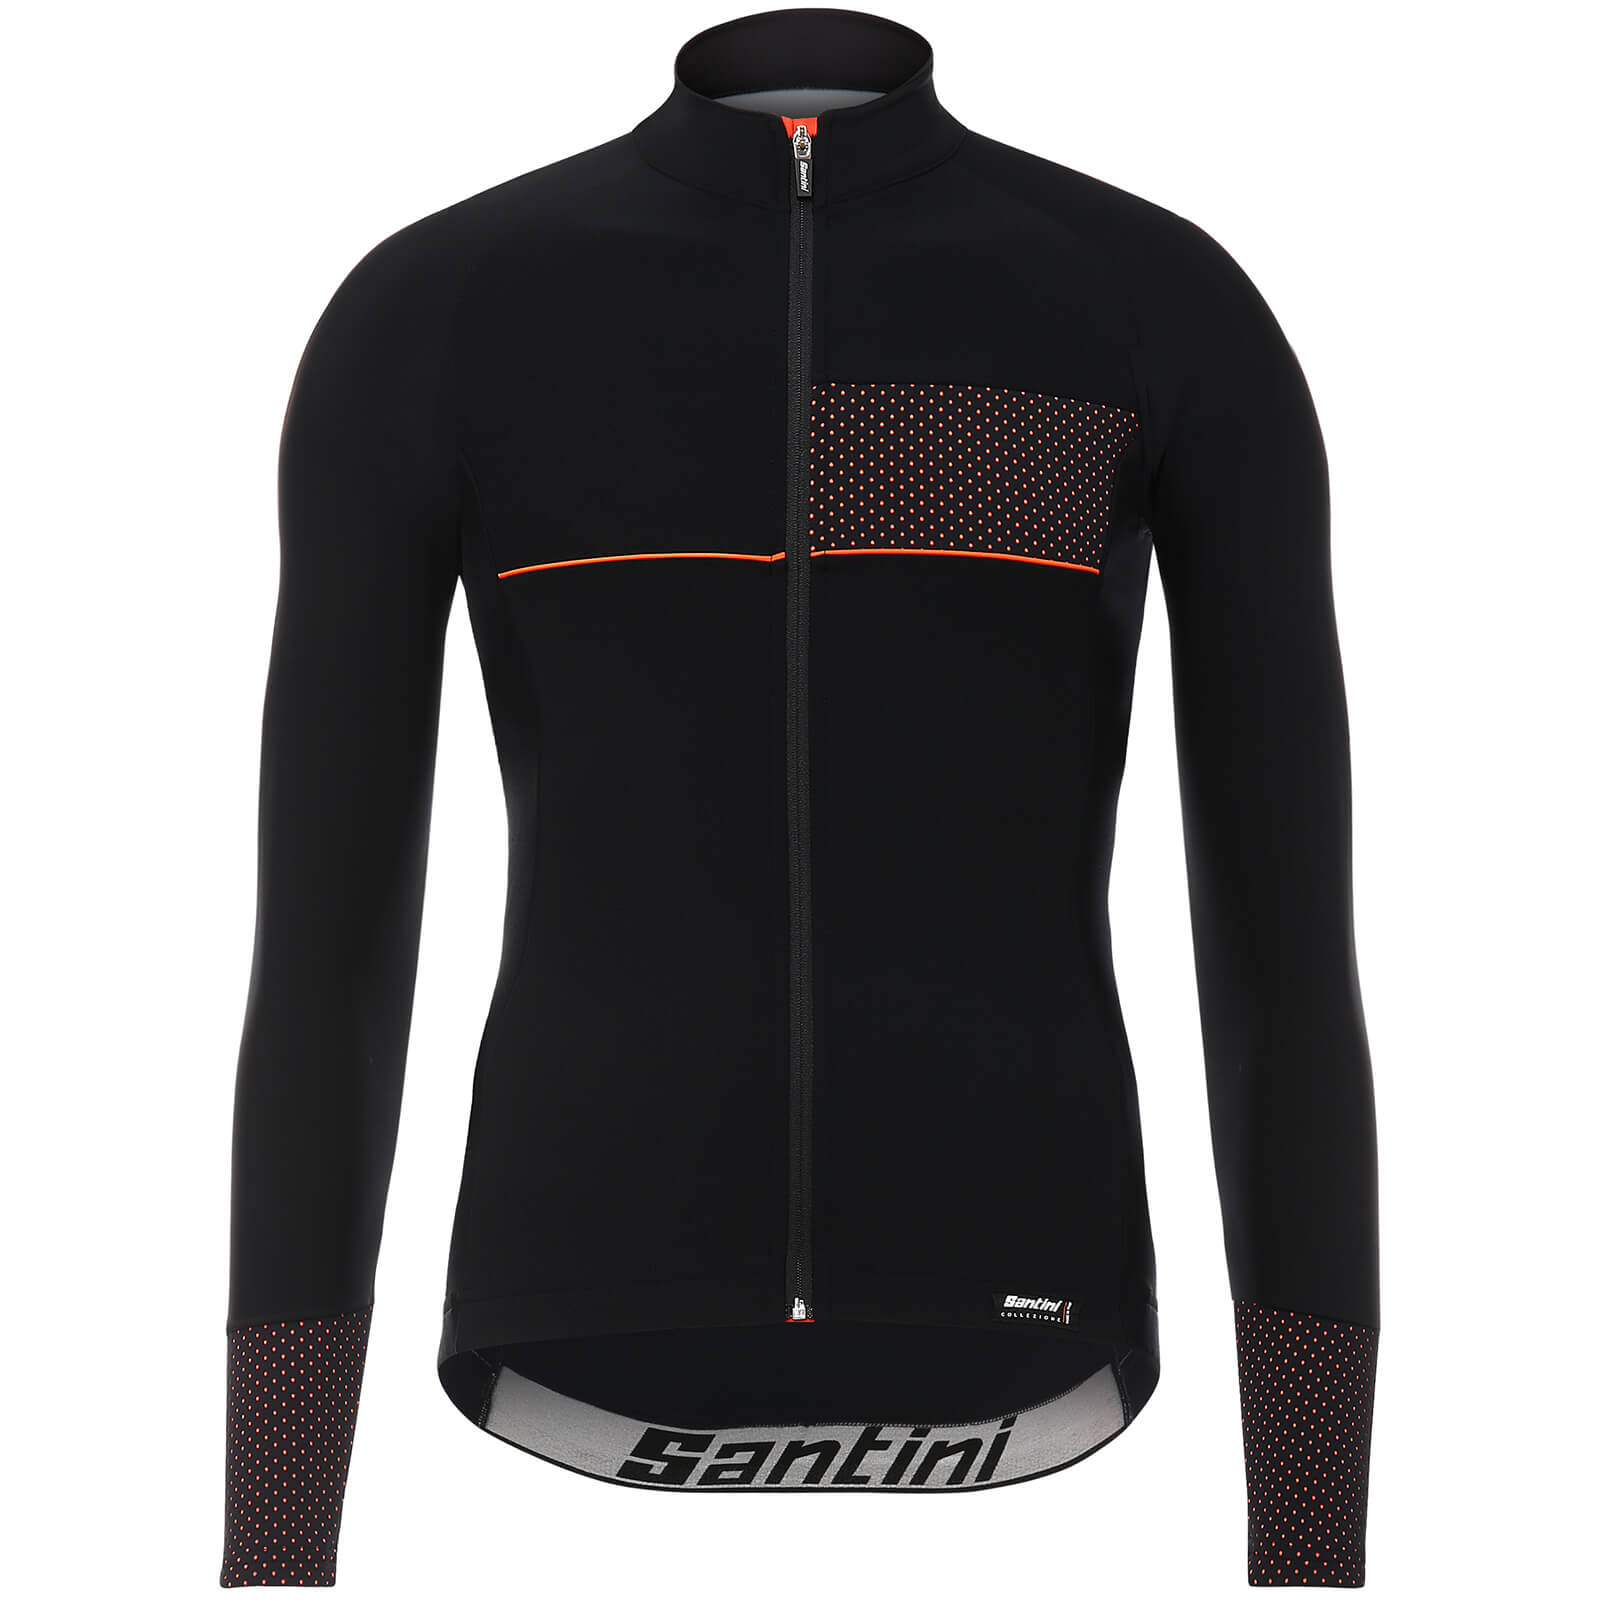 Santini Vega 2.0 Aquazero Long Sleeve Jersey - Black/Orange